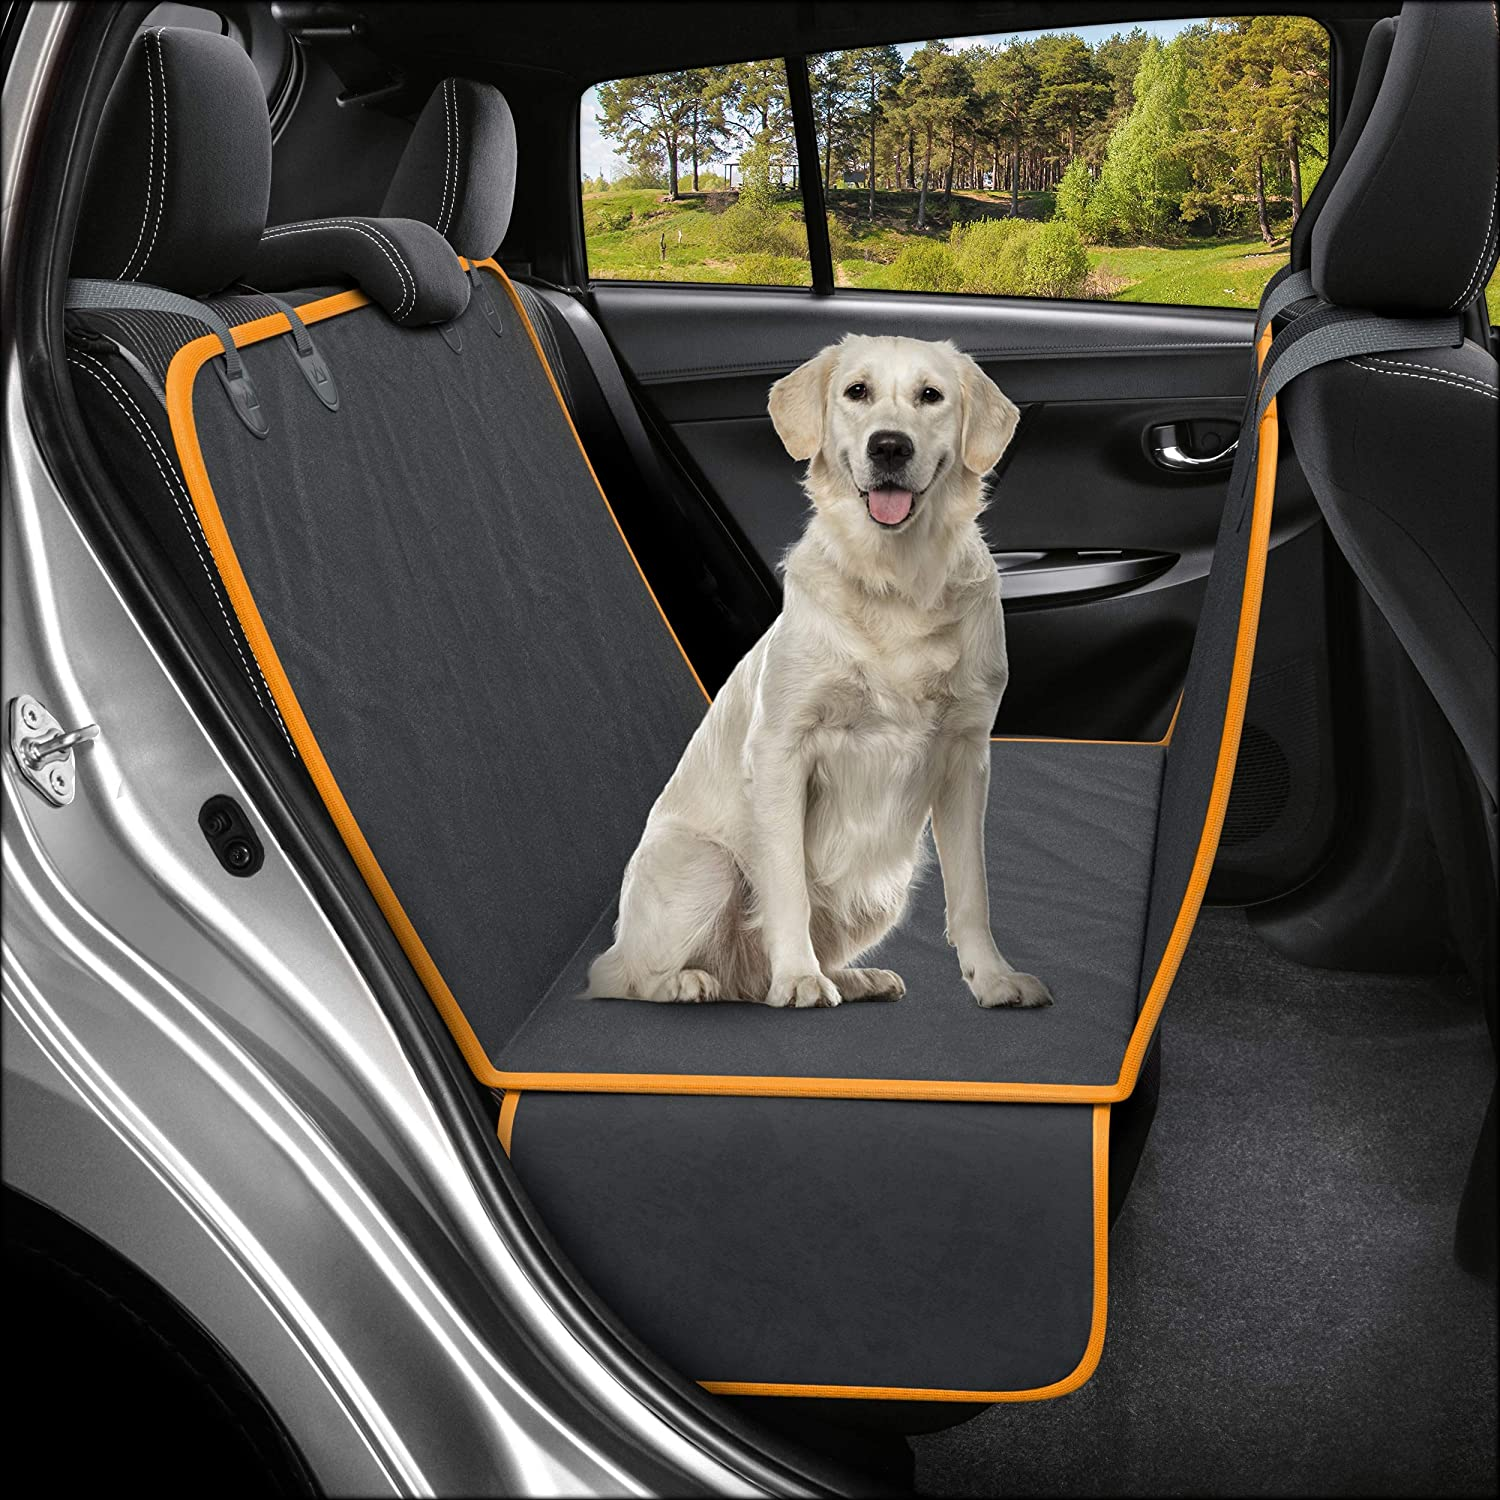 Active Pets Dog Back Seat Cover Protector Waterproof Scratchproof Hammock for Dogs Backseat Protection Against Dirt and Pet Fur Durable Pets Seat Covers for Cars & SUVs 91EwzxSyKzL